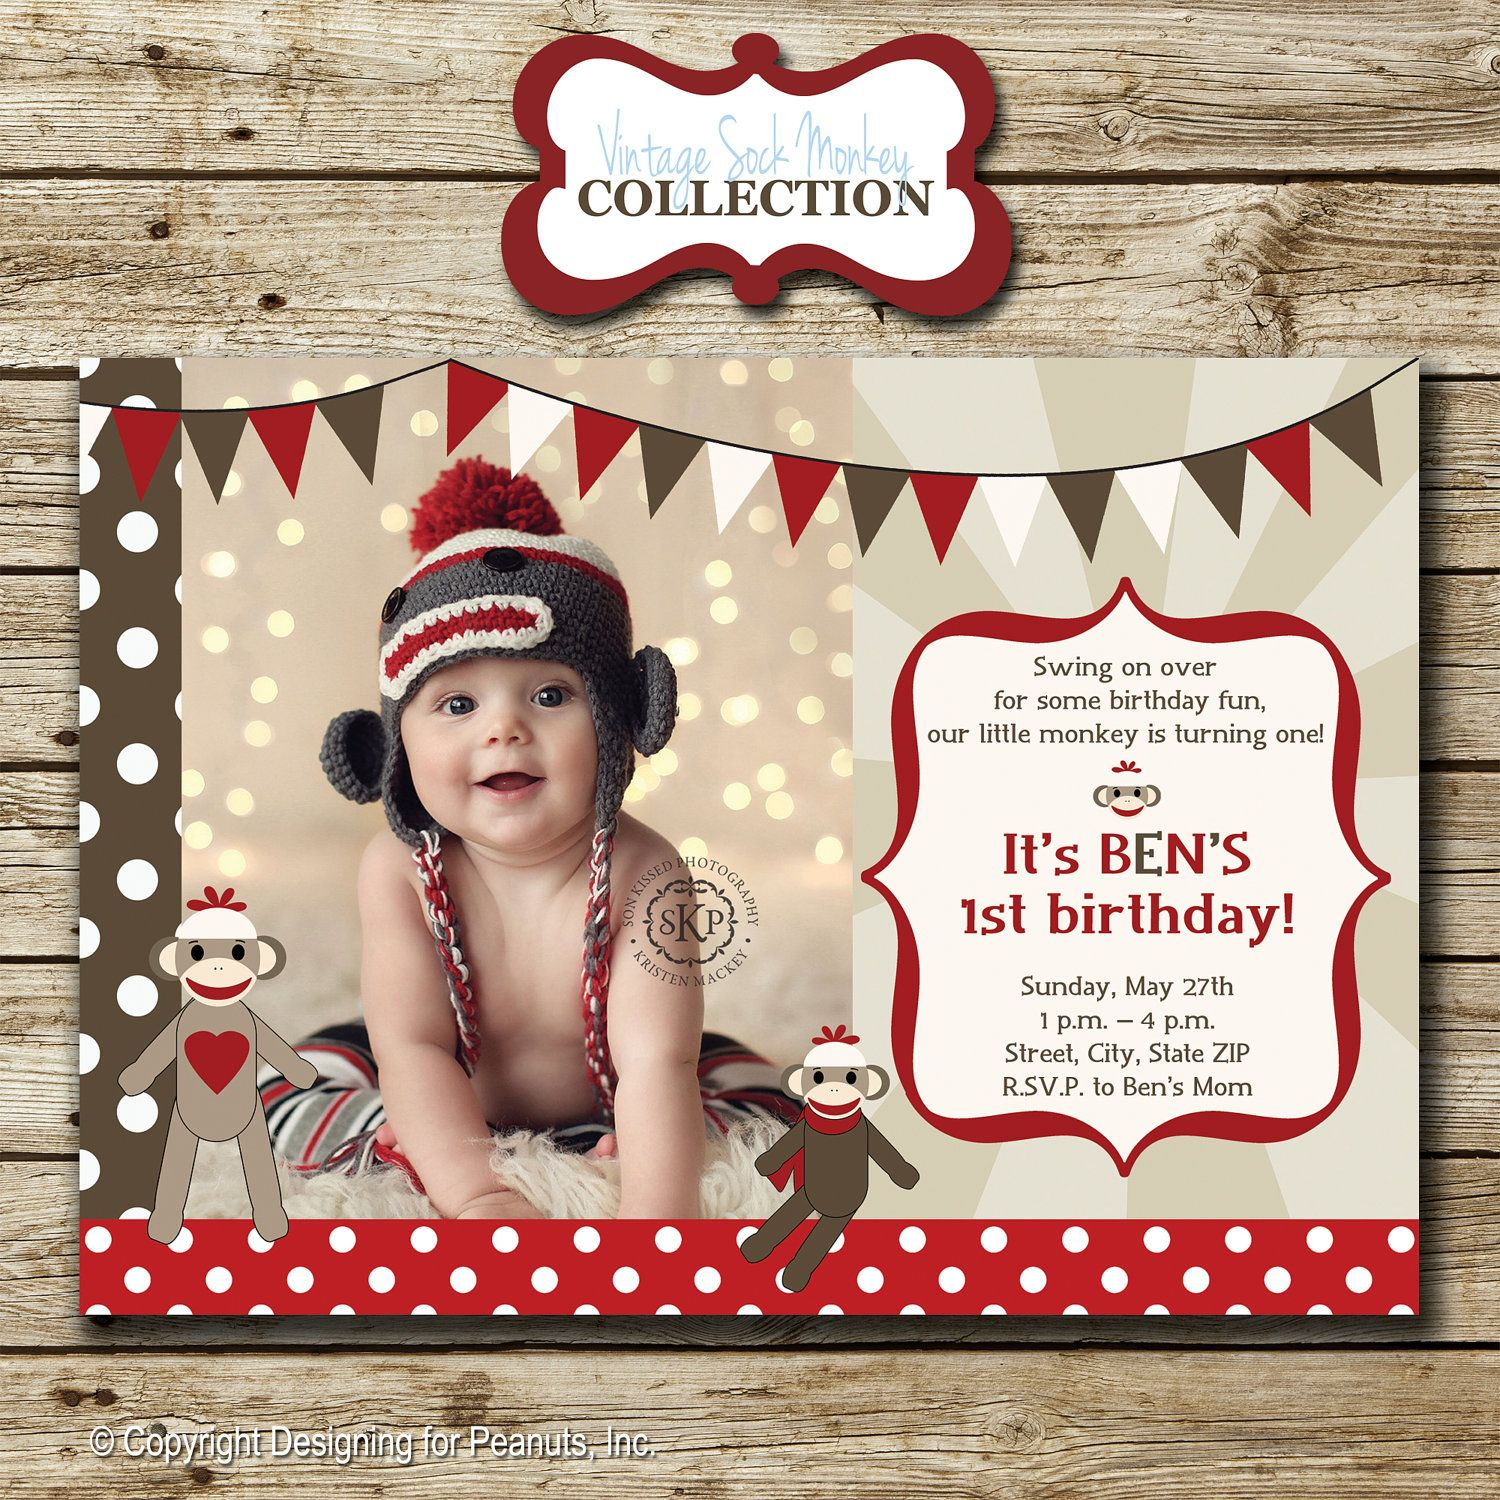 Sock Monkey Birthday Party Photo Invitation in red, brown, and tan ...